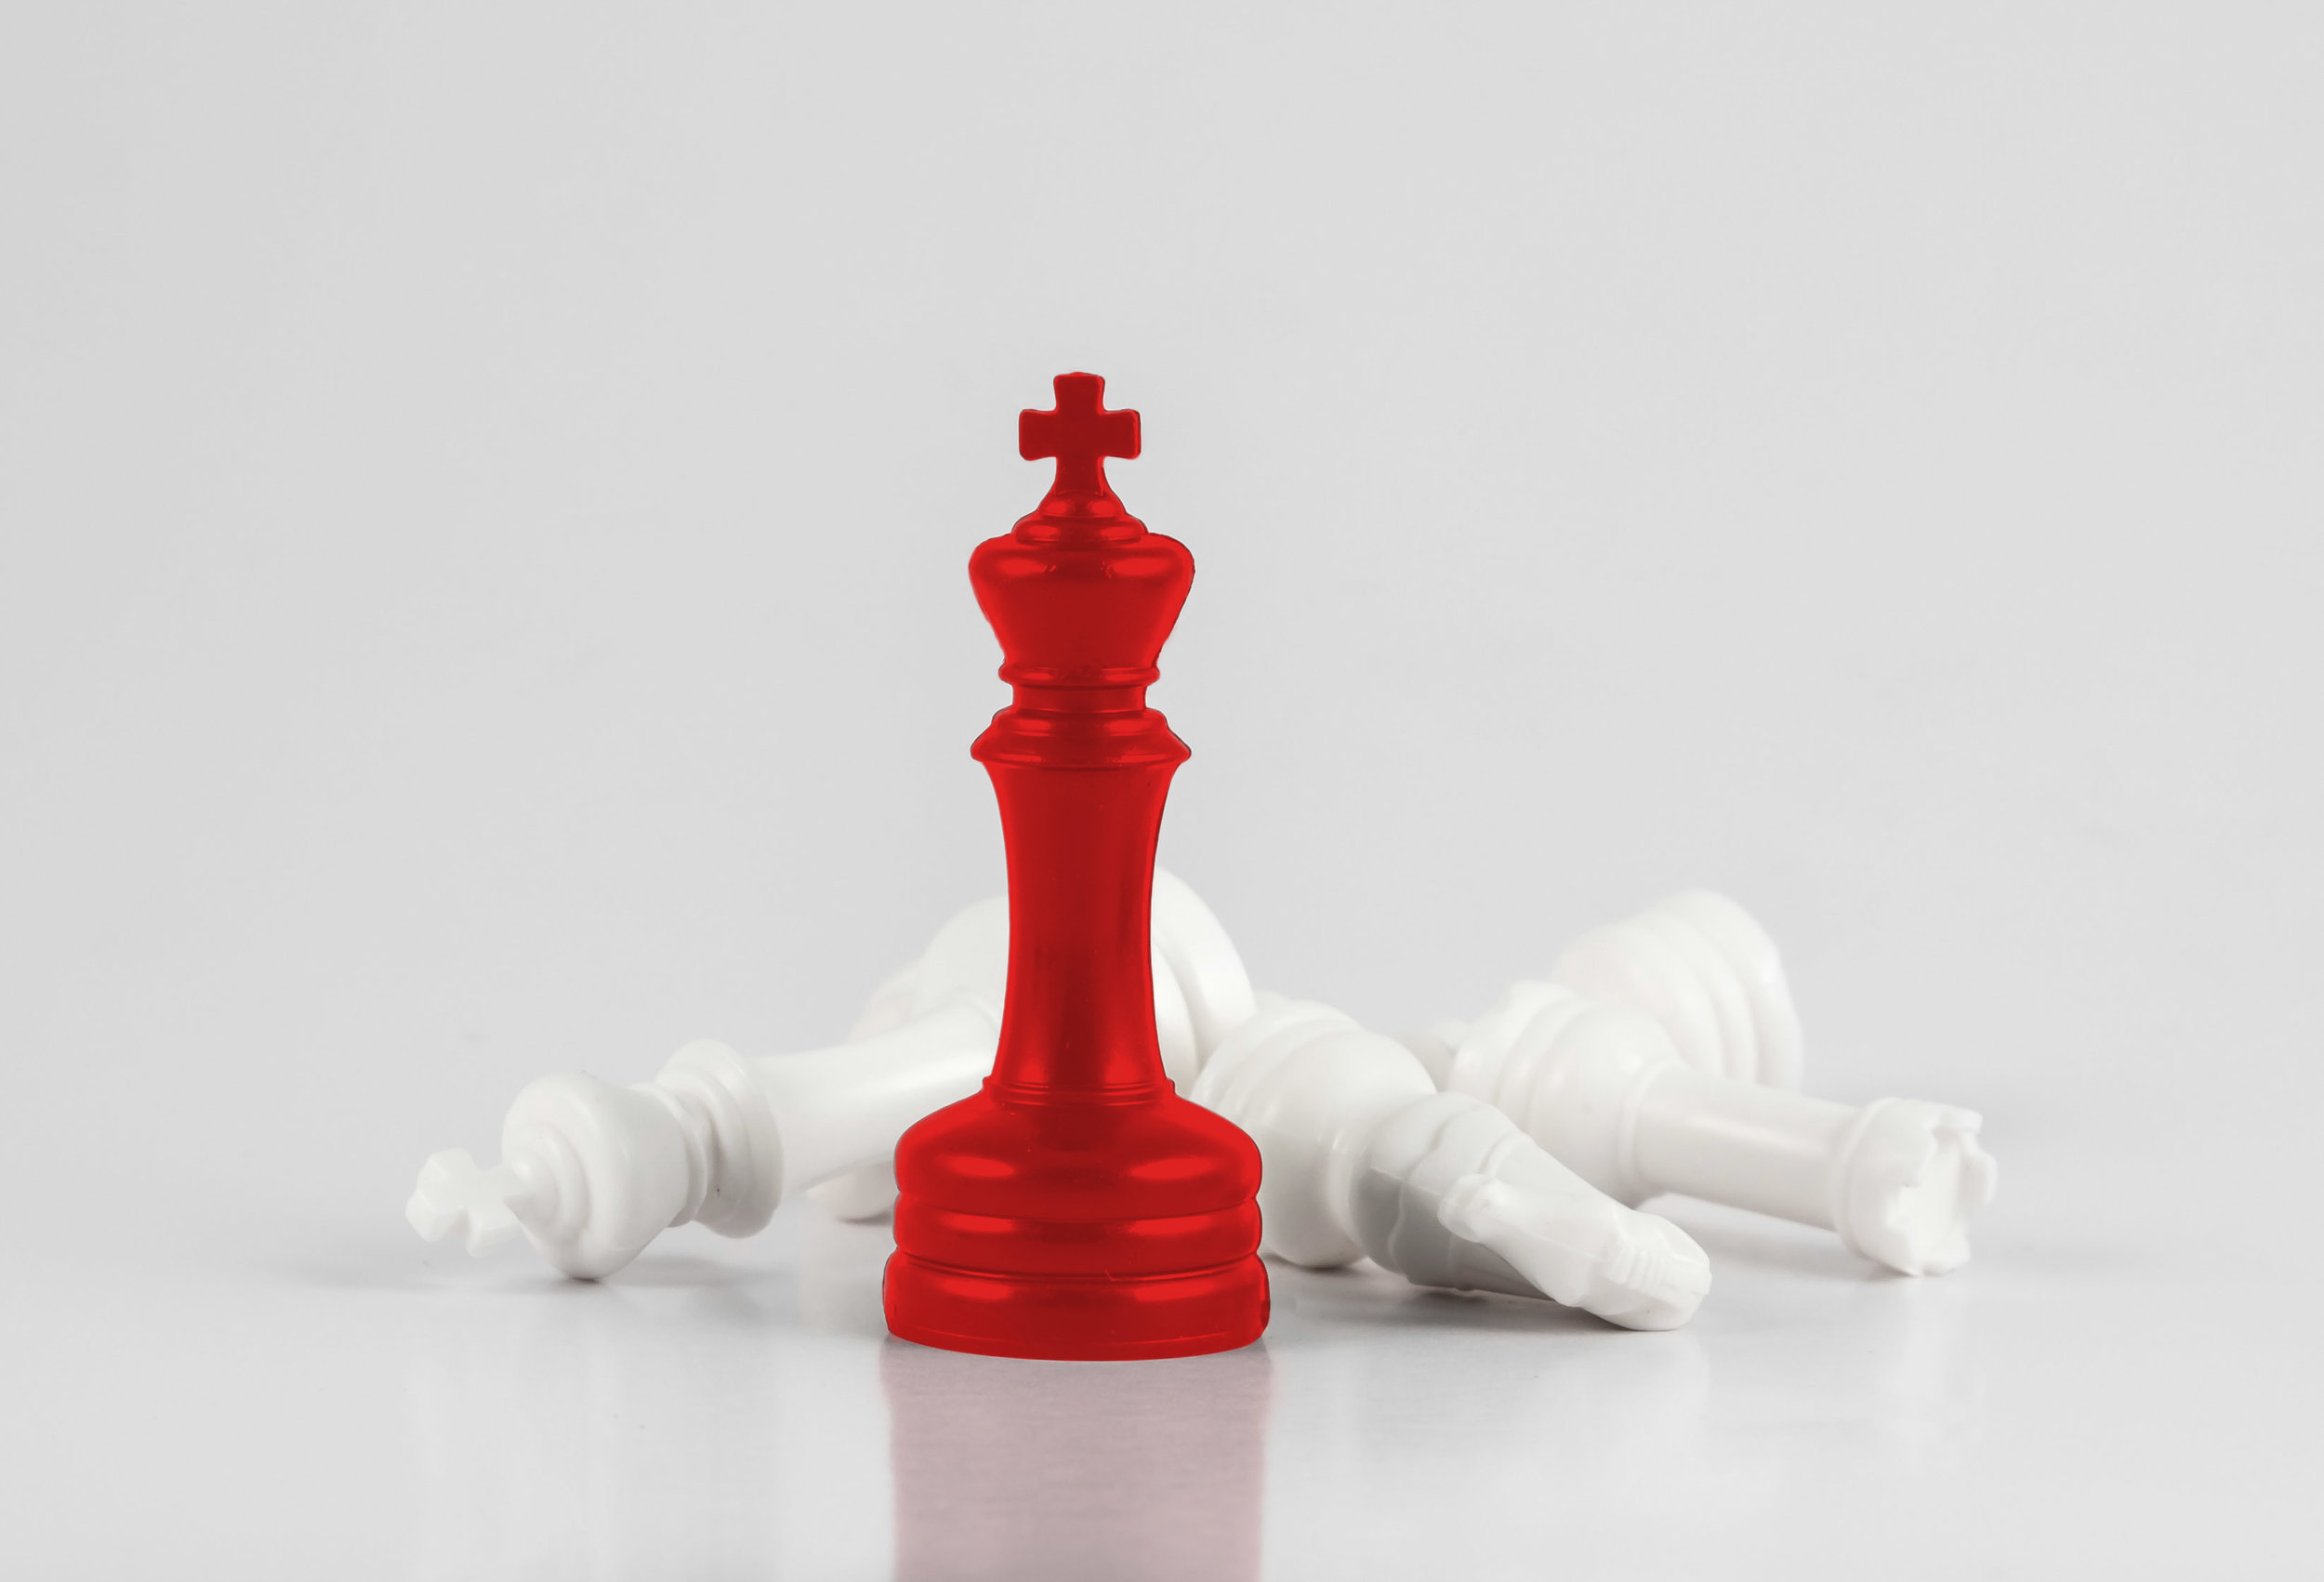 CDM edit free-stock-photo-chess-business-concept-leader-success-1264.jpg